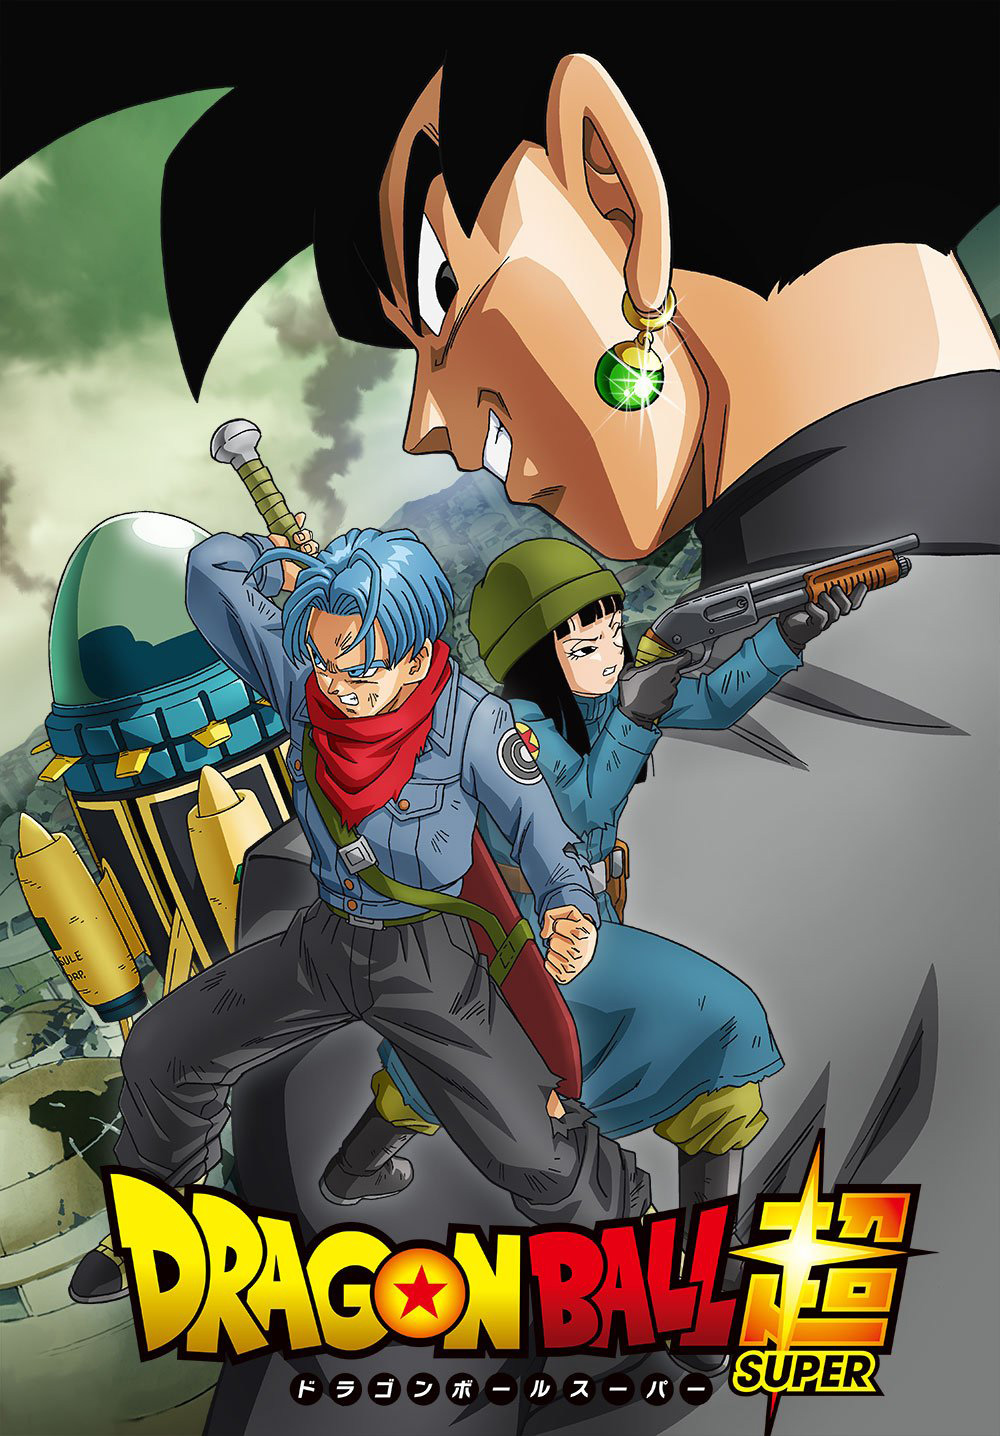 Dragon-Ball-Supers-Future-Trunks-Arc-Visual